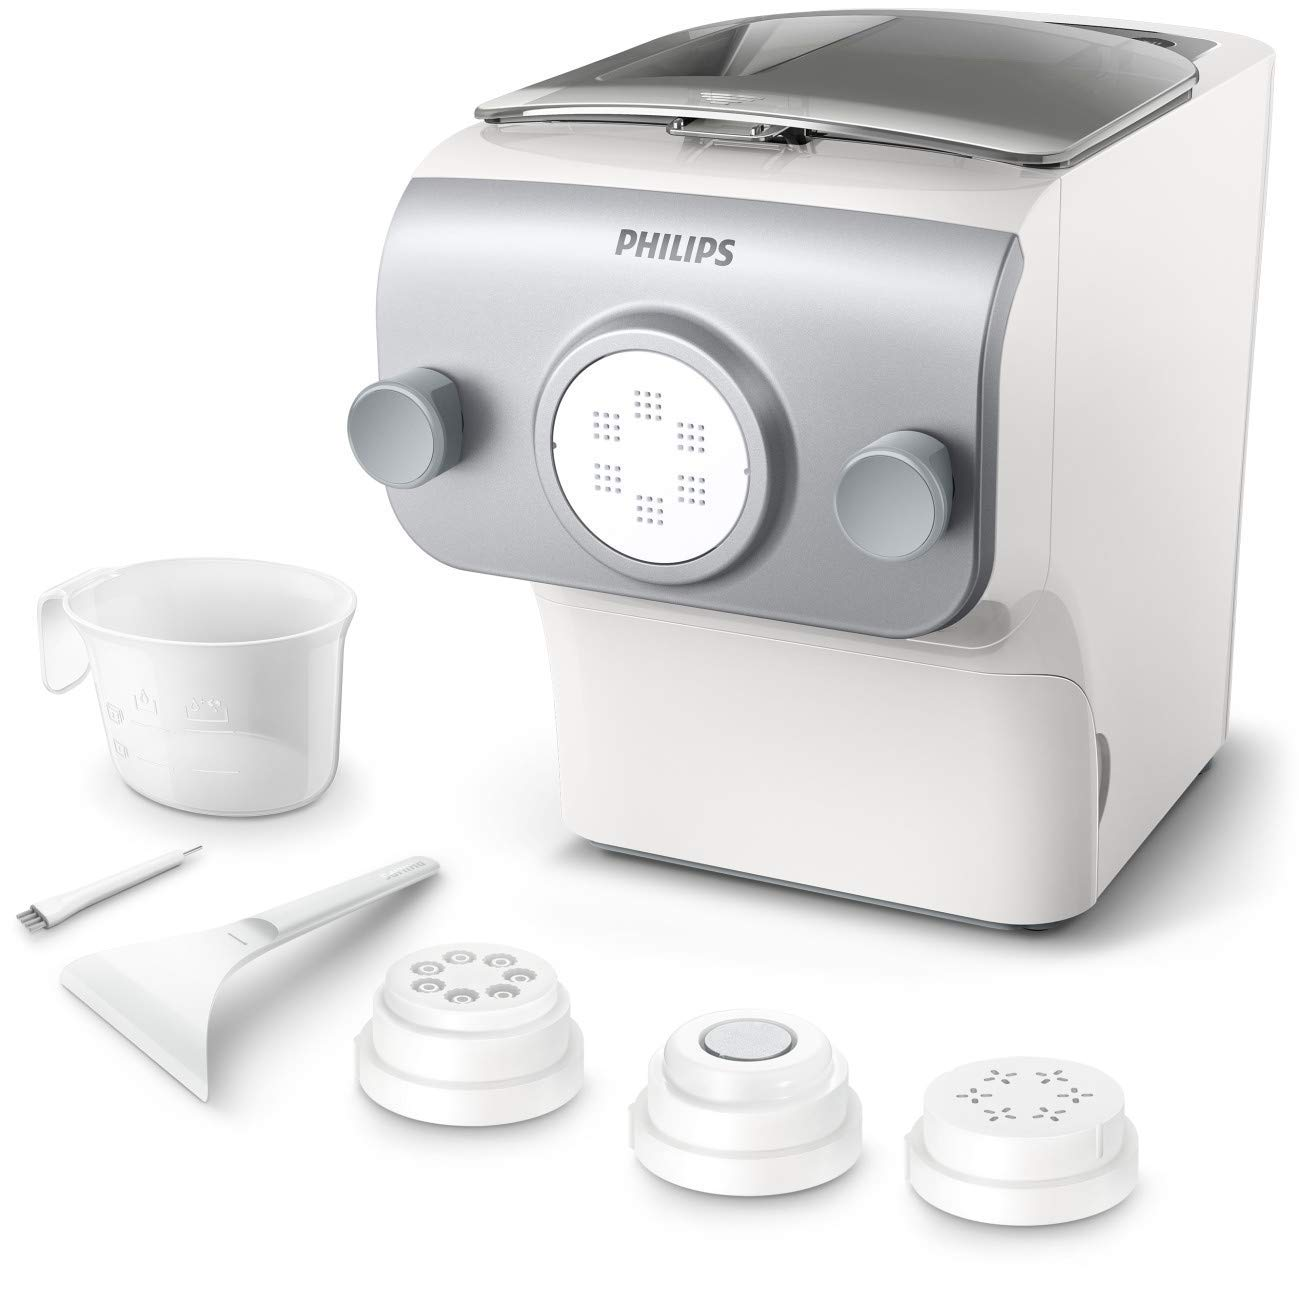 Philips Avance Collection Automatic Pasta and Noodle Maker Plus with 4 Interchangeable Pasta Shape Plates, Silver - HR2375/06 (Latest Version, 2019 Release) by Philips